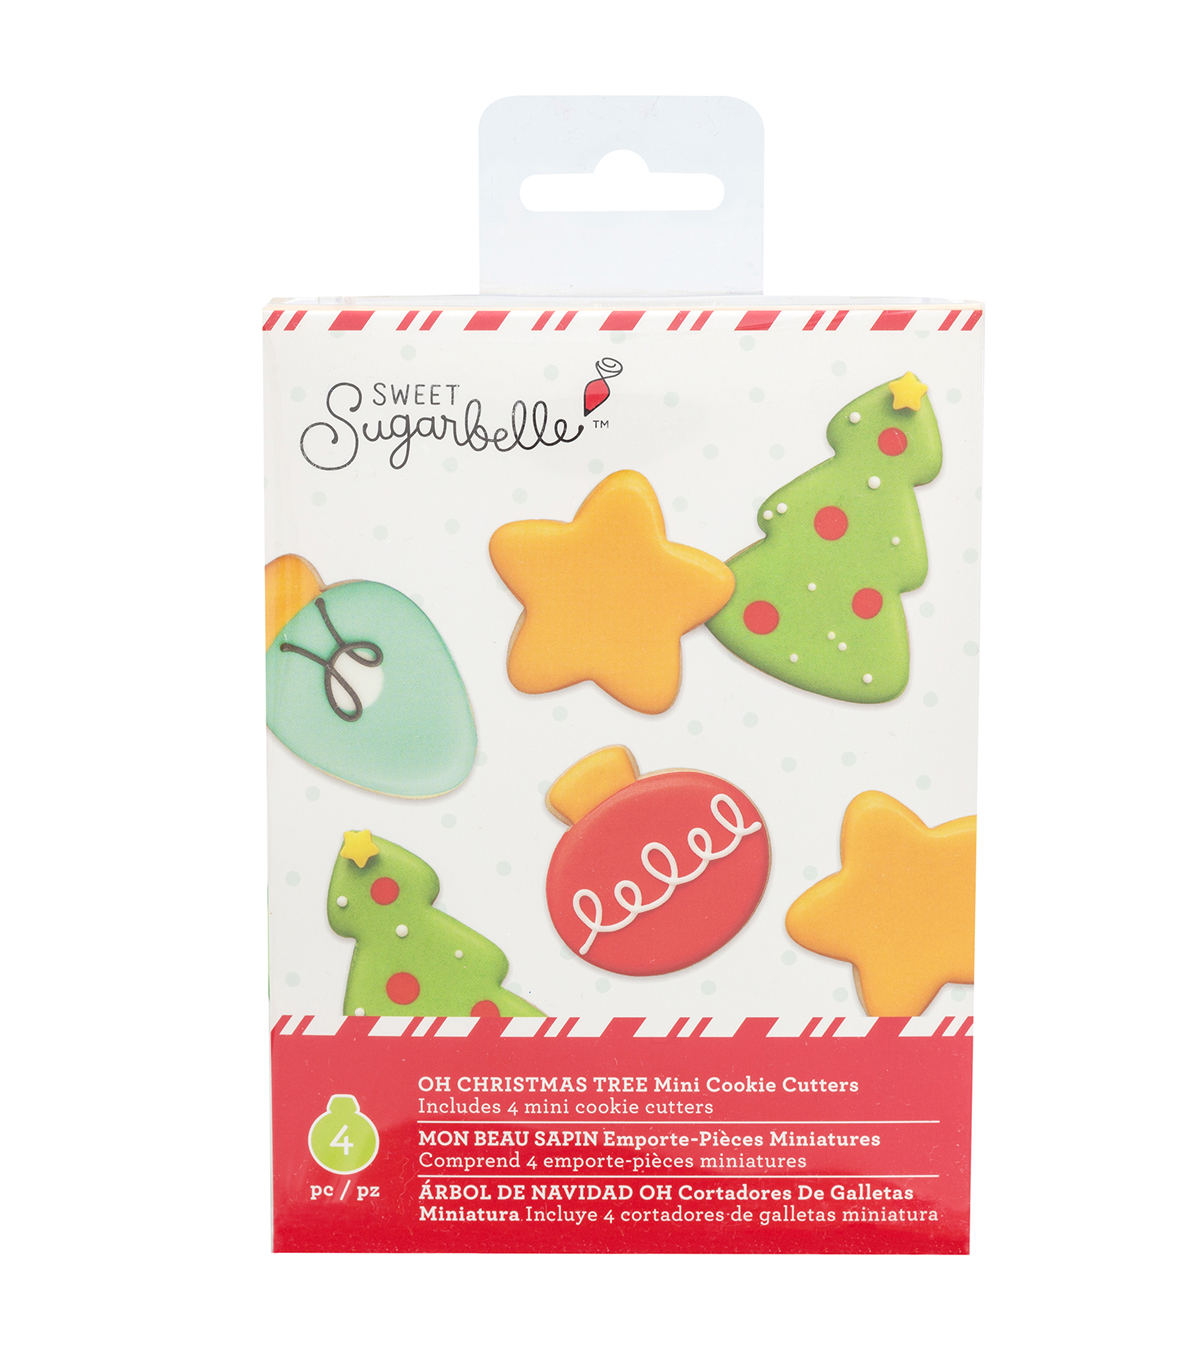 Sweet Sugarbelle Christmas Mini Cookie Cutter Set-Oh Christmas Tree ...